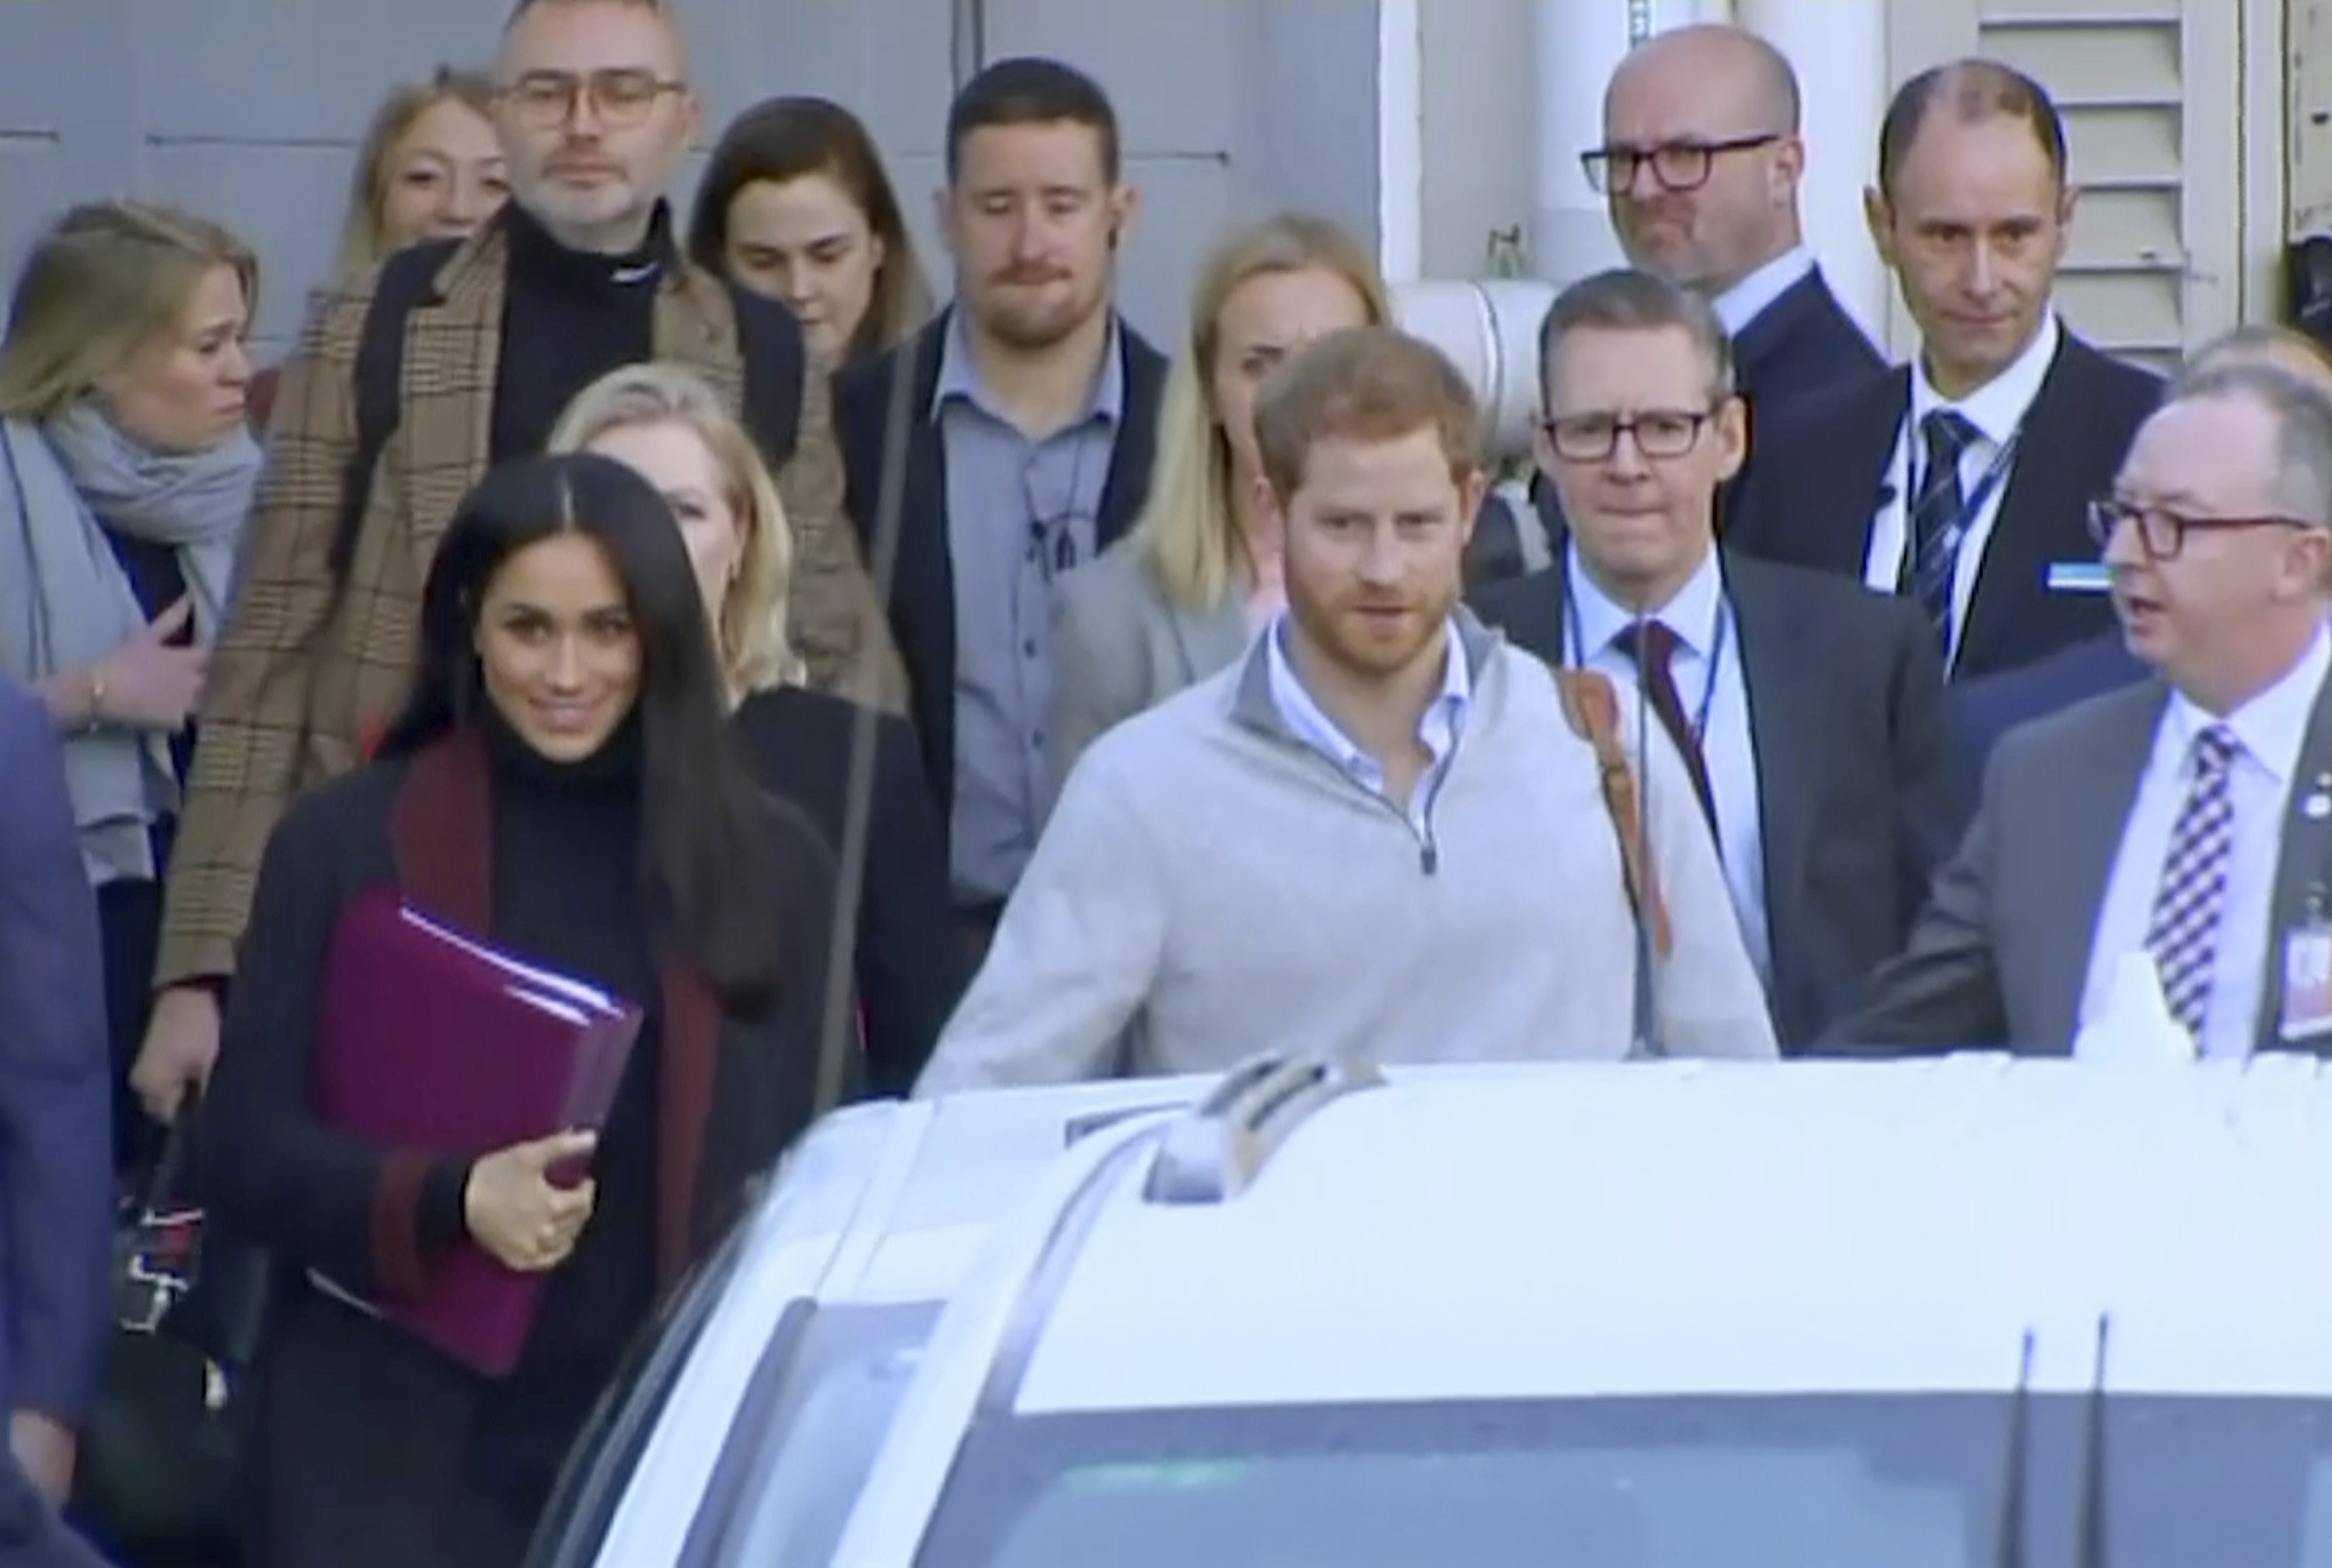 Meghan and Harry arrive in Australia